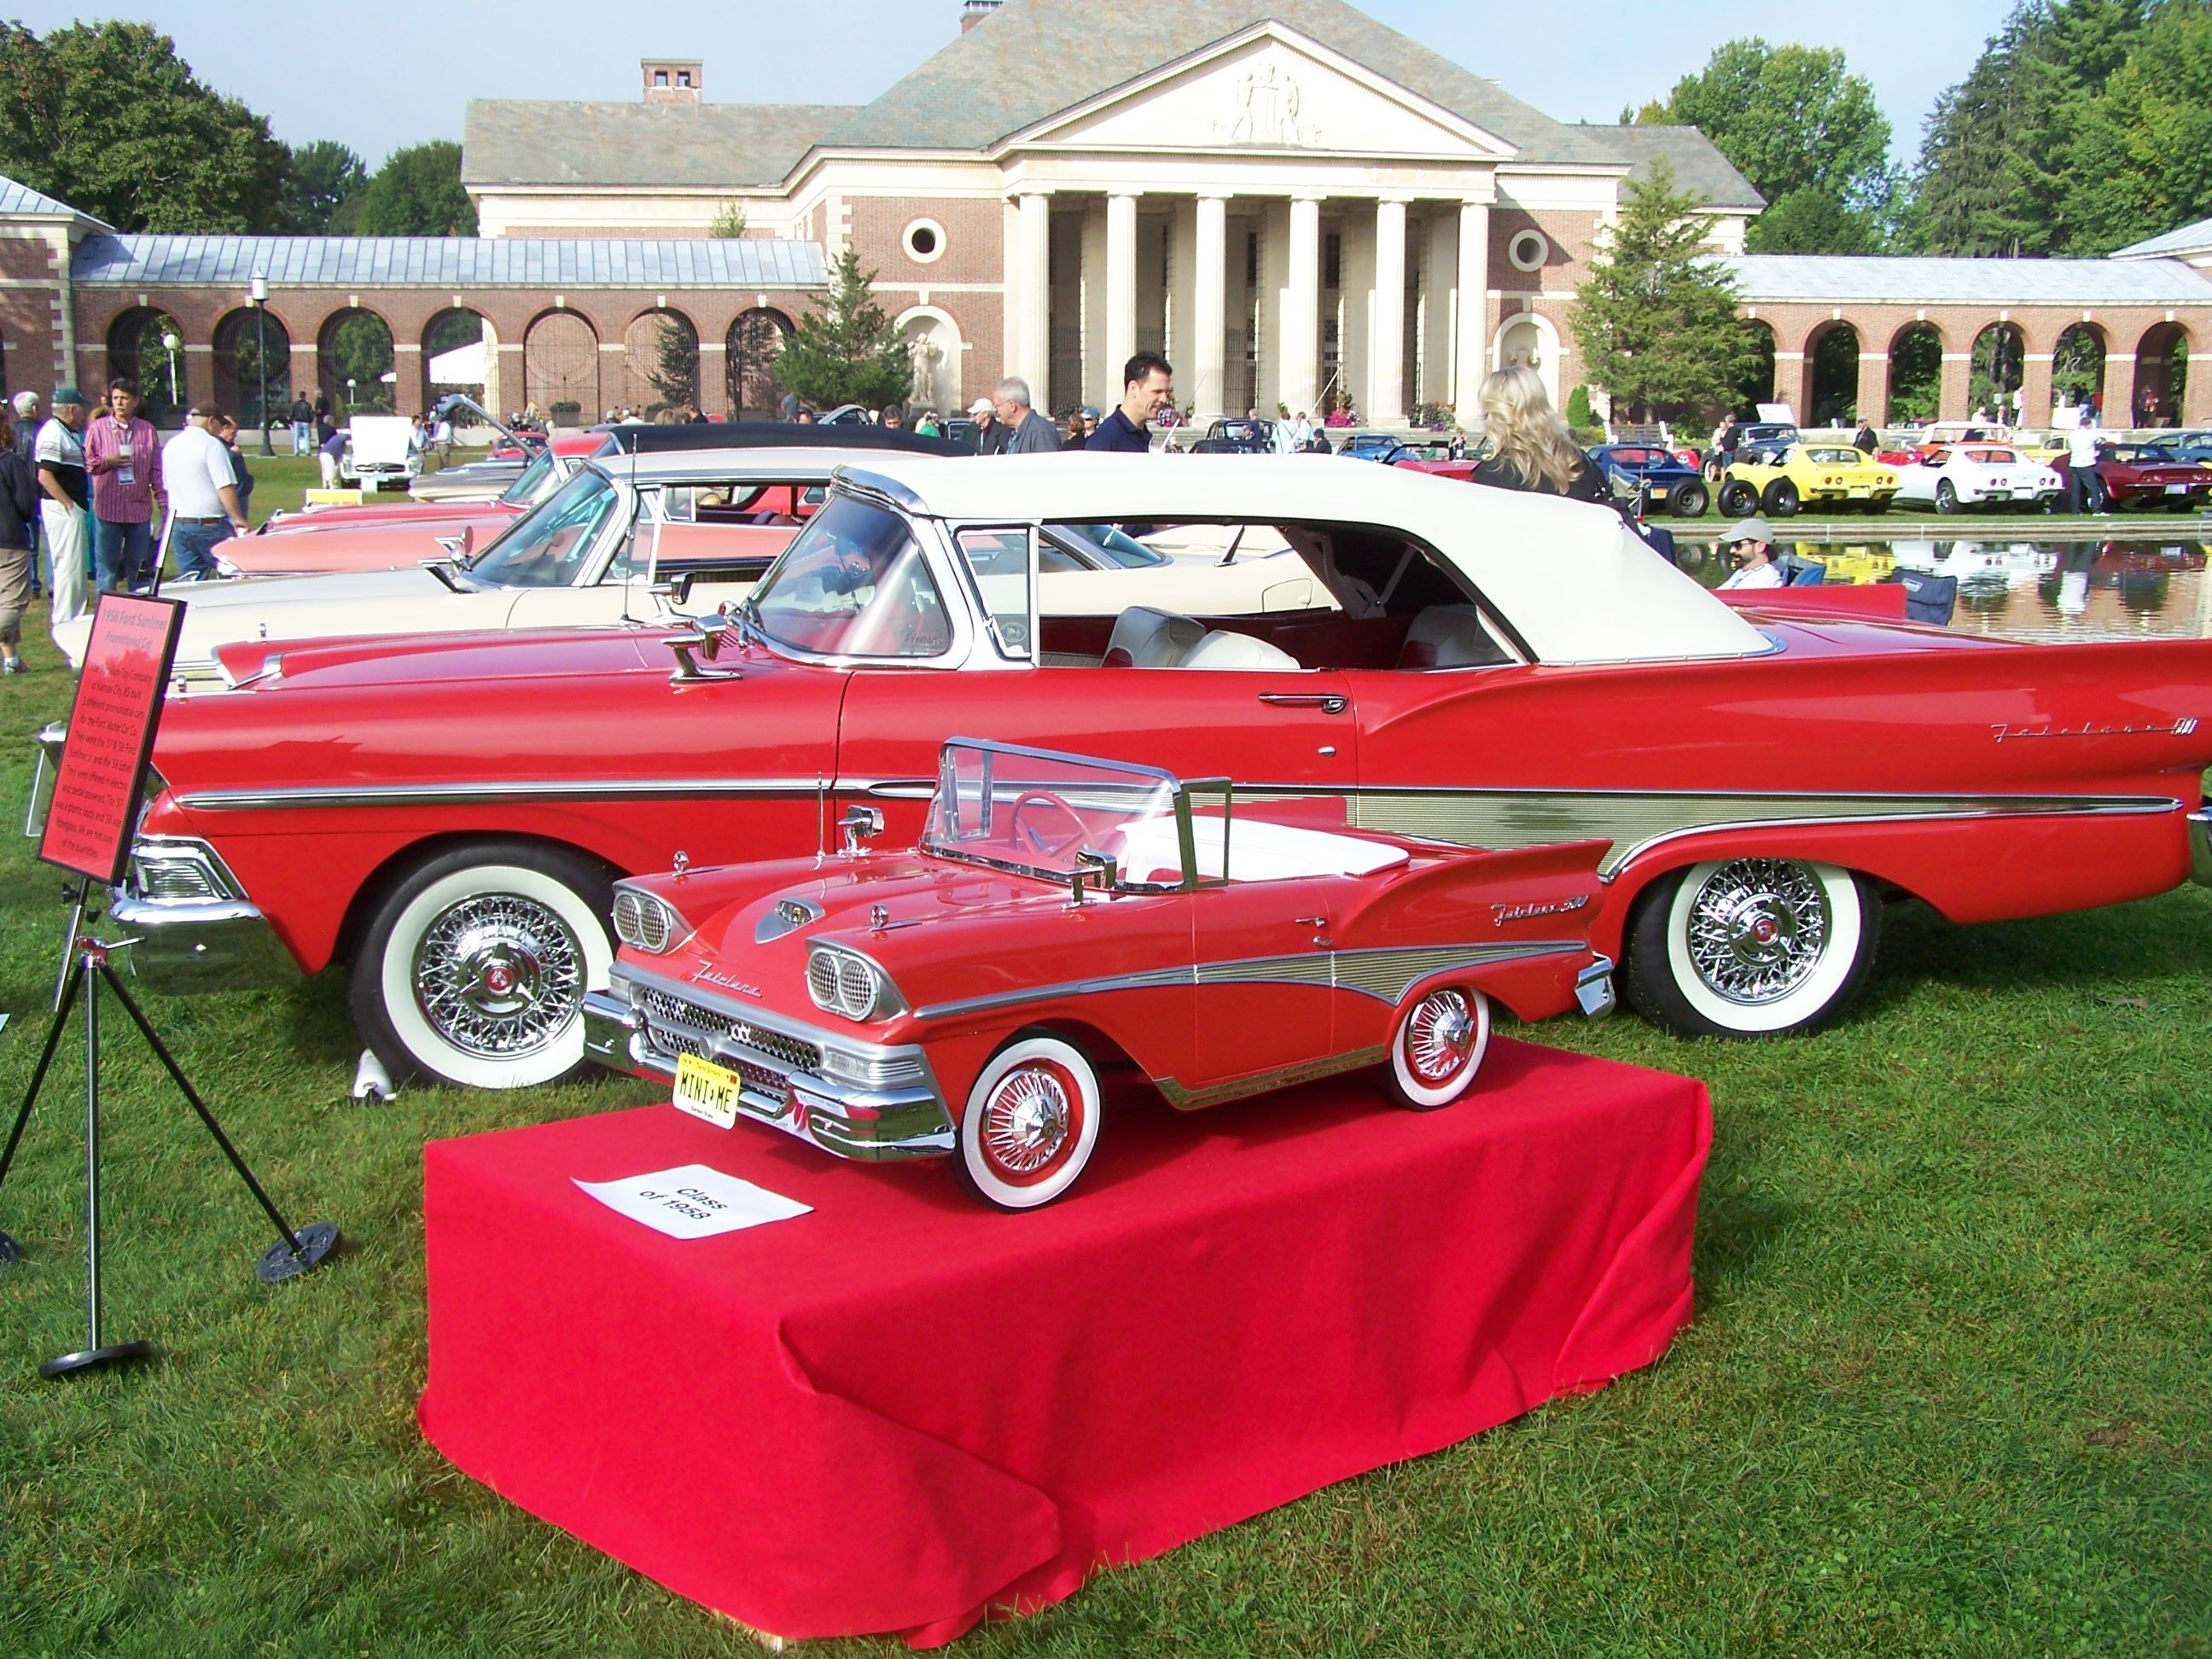 1958 ford fairlane sunliner with matching restored pedal car